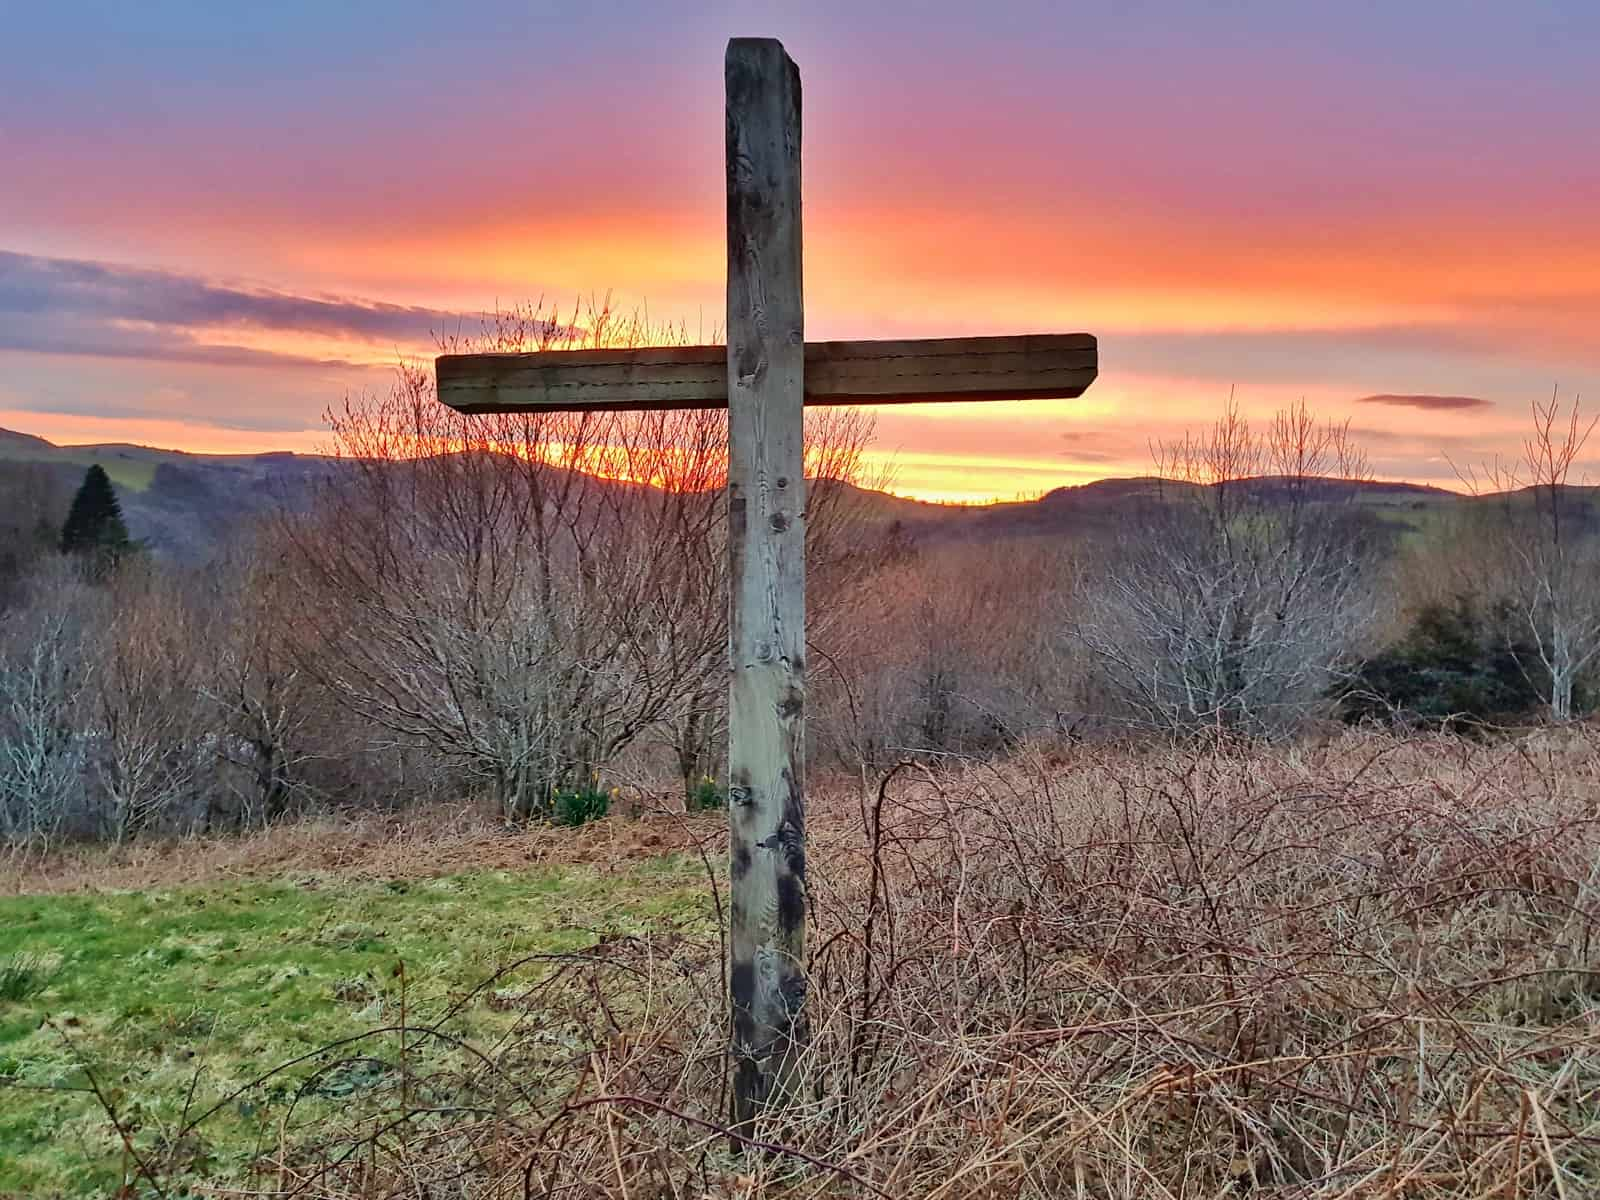 Cross in foreground with sun setting over hills behind taken at a campsite in Devil's Bridge, a stop on the Vale of Rheidol Railway